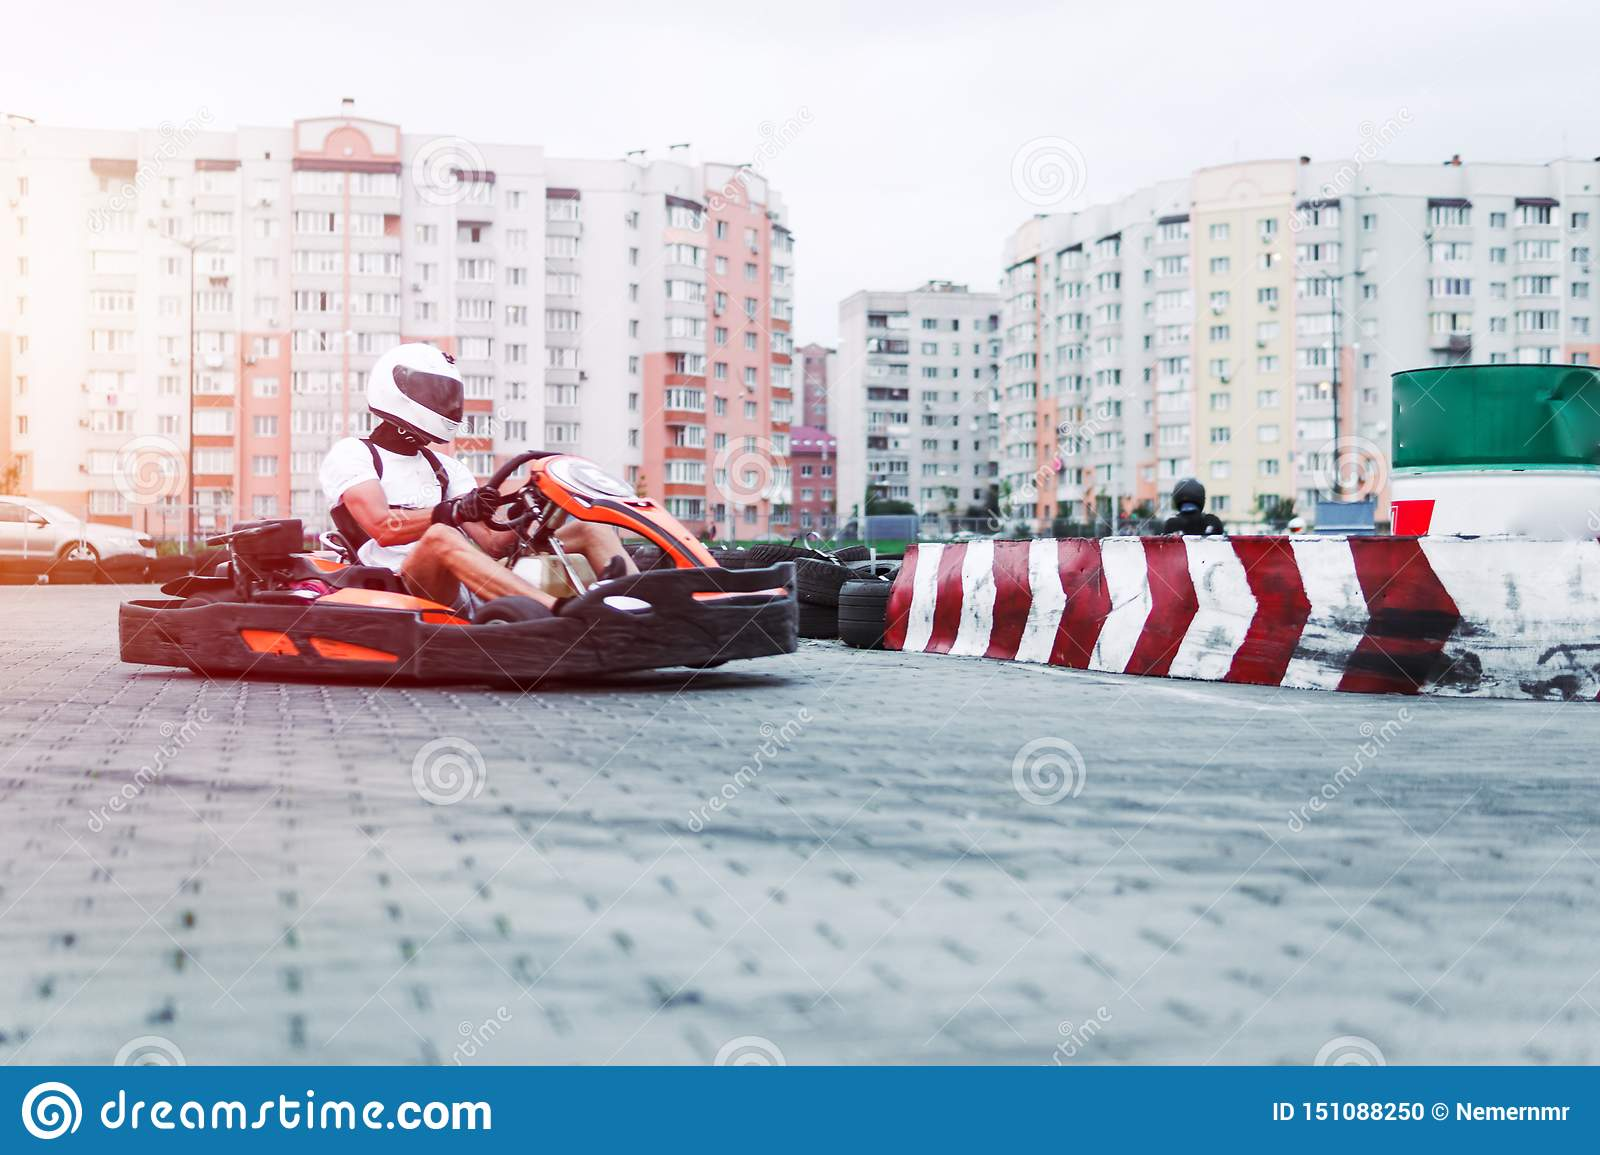 Racing car on the track in action, championship, active sports, extreme fun, the driver keeps his hands on the wheel. protective